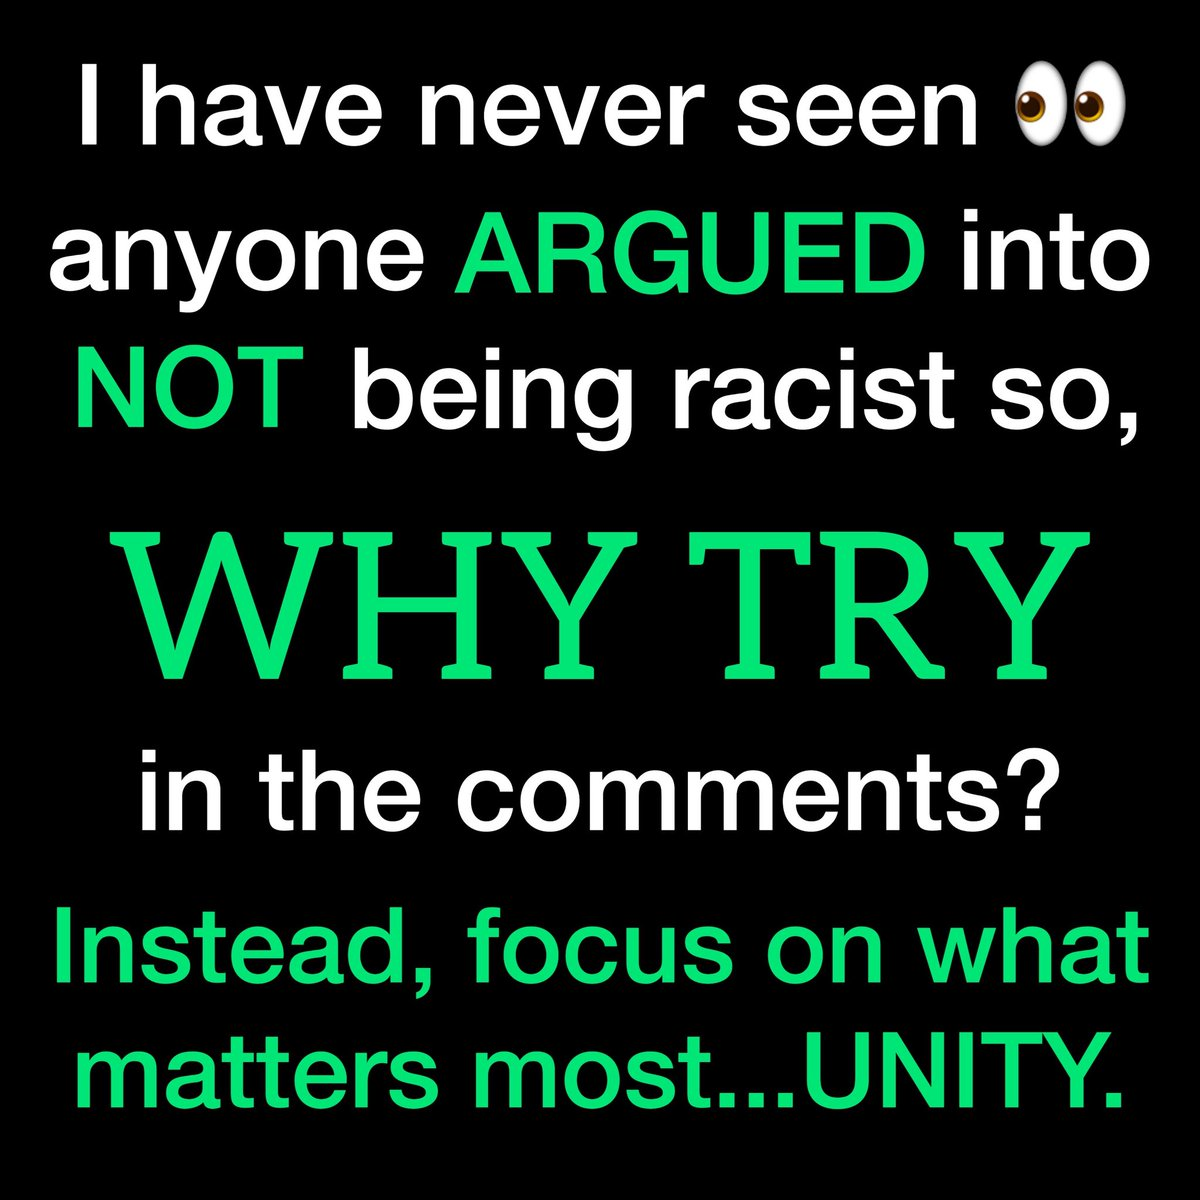 Just a couple of facts.  #unity #blacklivematter #NoRacism #lovethyneighbor https://t.co/SmCLKxN6EF